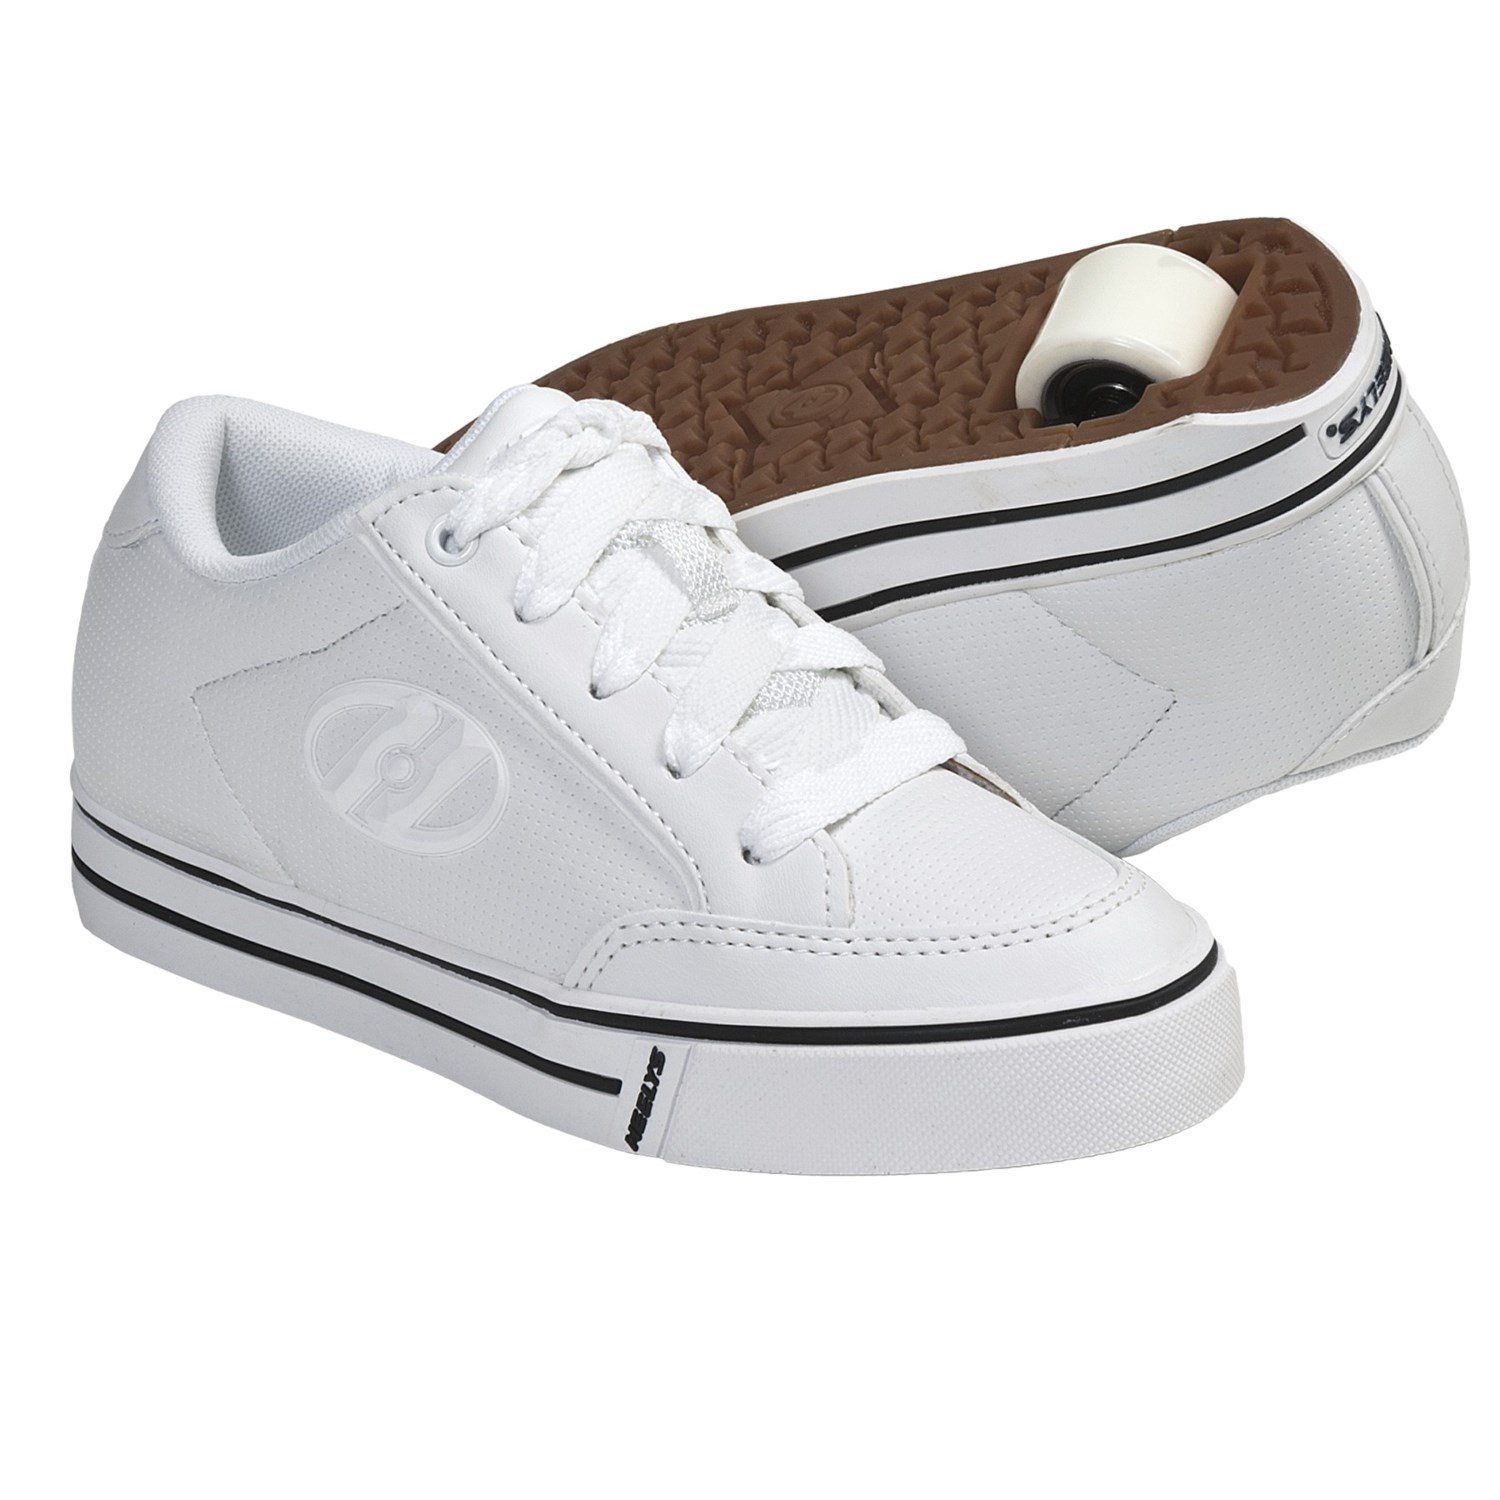 heelys wave wheel heel skate shoes for boys and